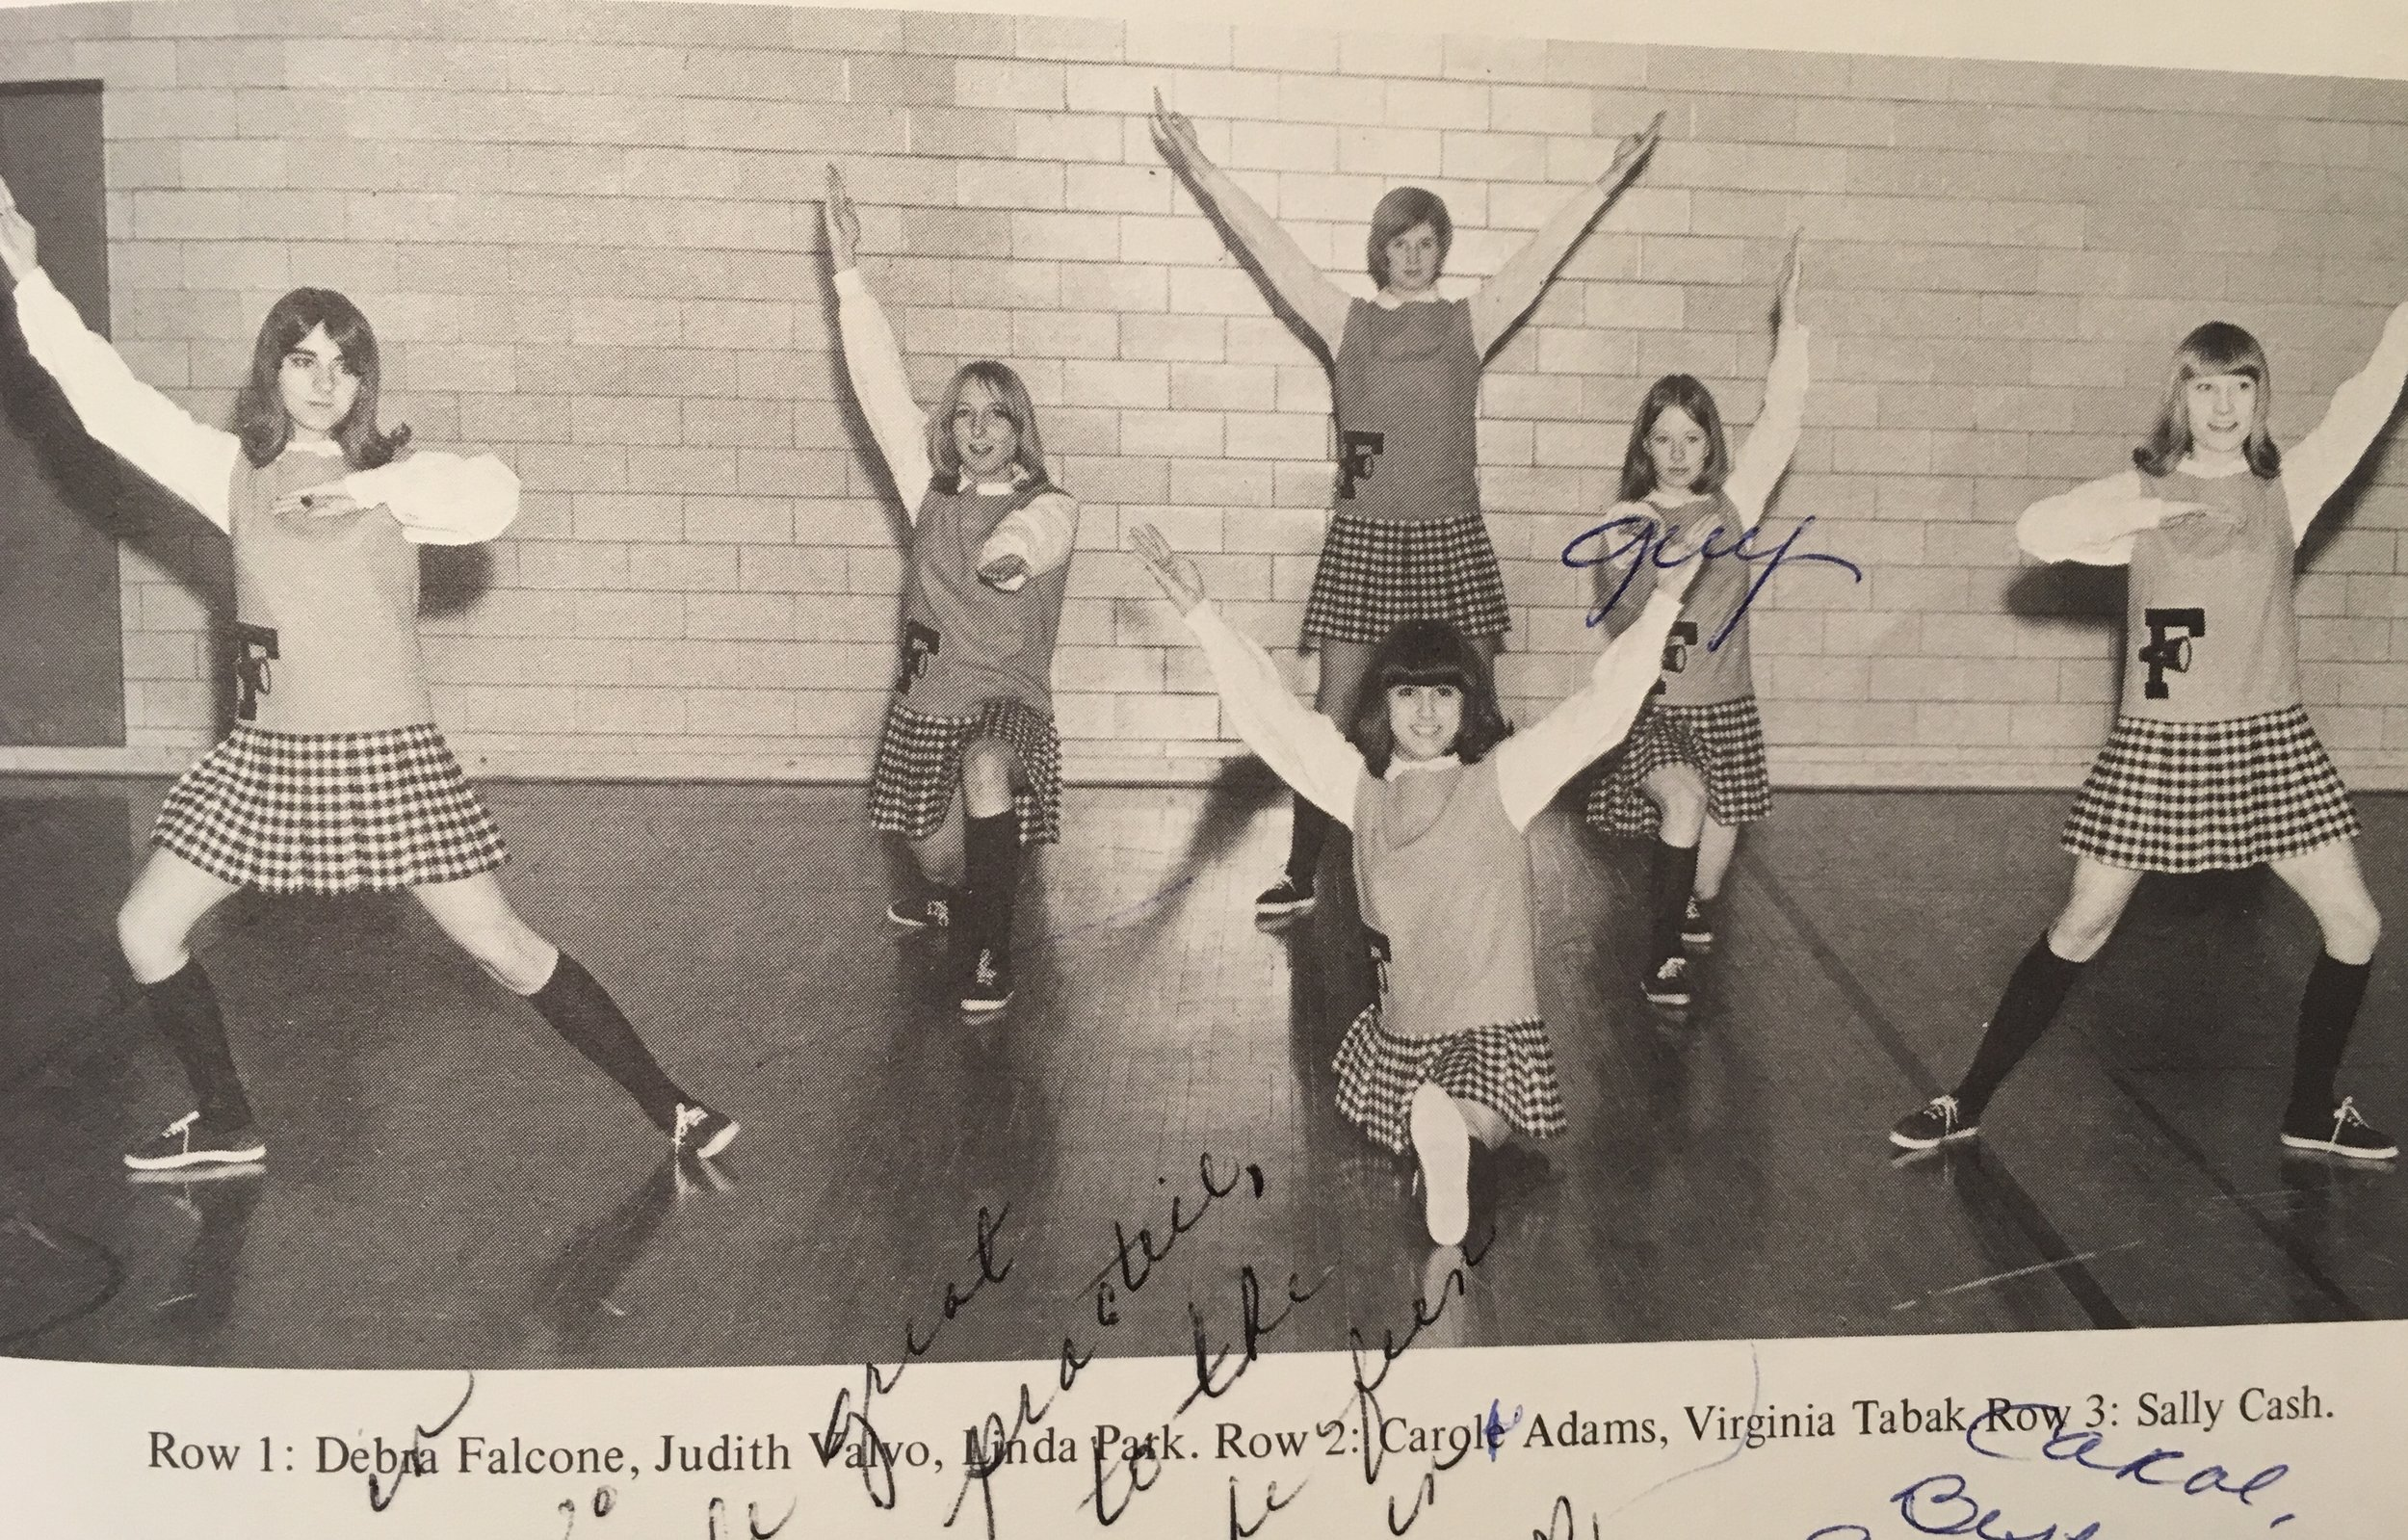 Yes I was a cheerleader. Cheerleading was one of the few athletic options for girls before Title IX. This was the longest our hair could be, truly!